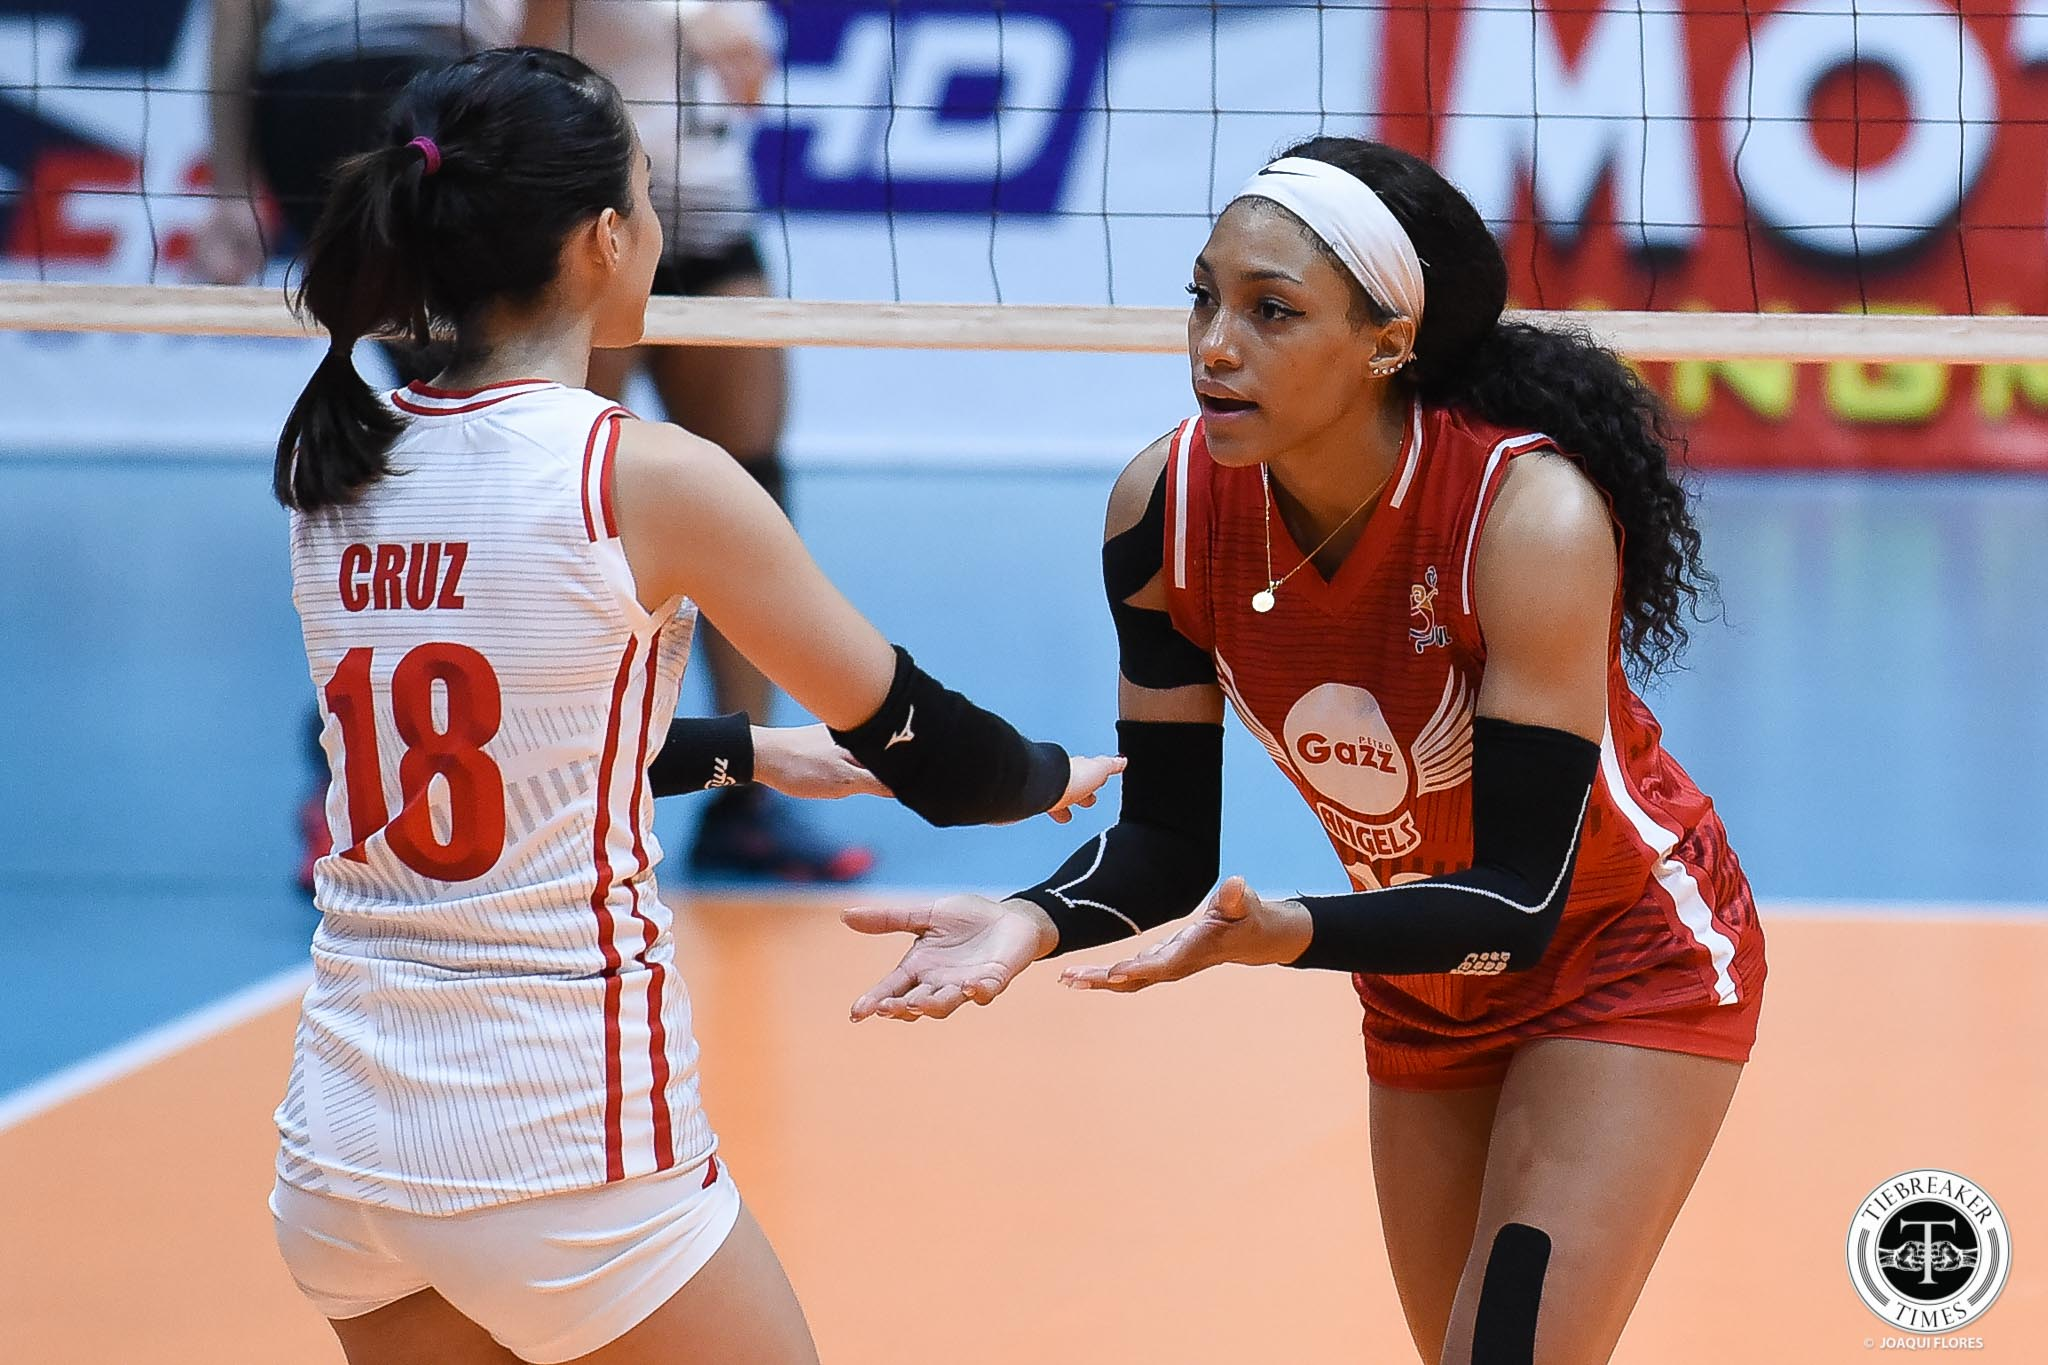 Tiebreaker Times Petro Gazz staves off PacificTown–Army to complete first round sweep News PVL Volleyball  Wilma Salas Petro Gazz Angels Pacific Town-Army Lady Troopers Olena Lymareva-Flink Kungfu Reyes Jenelle Jordan Jeanette Panaga Janisa Johnson Djanel Cheng Arnold Laniog 2019 PVL Season 2019 PVL Reinforced Conference